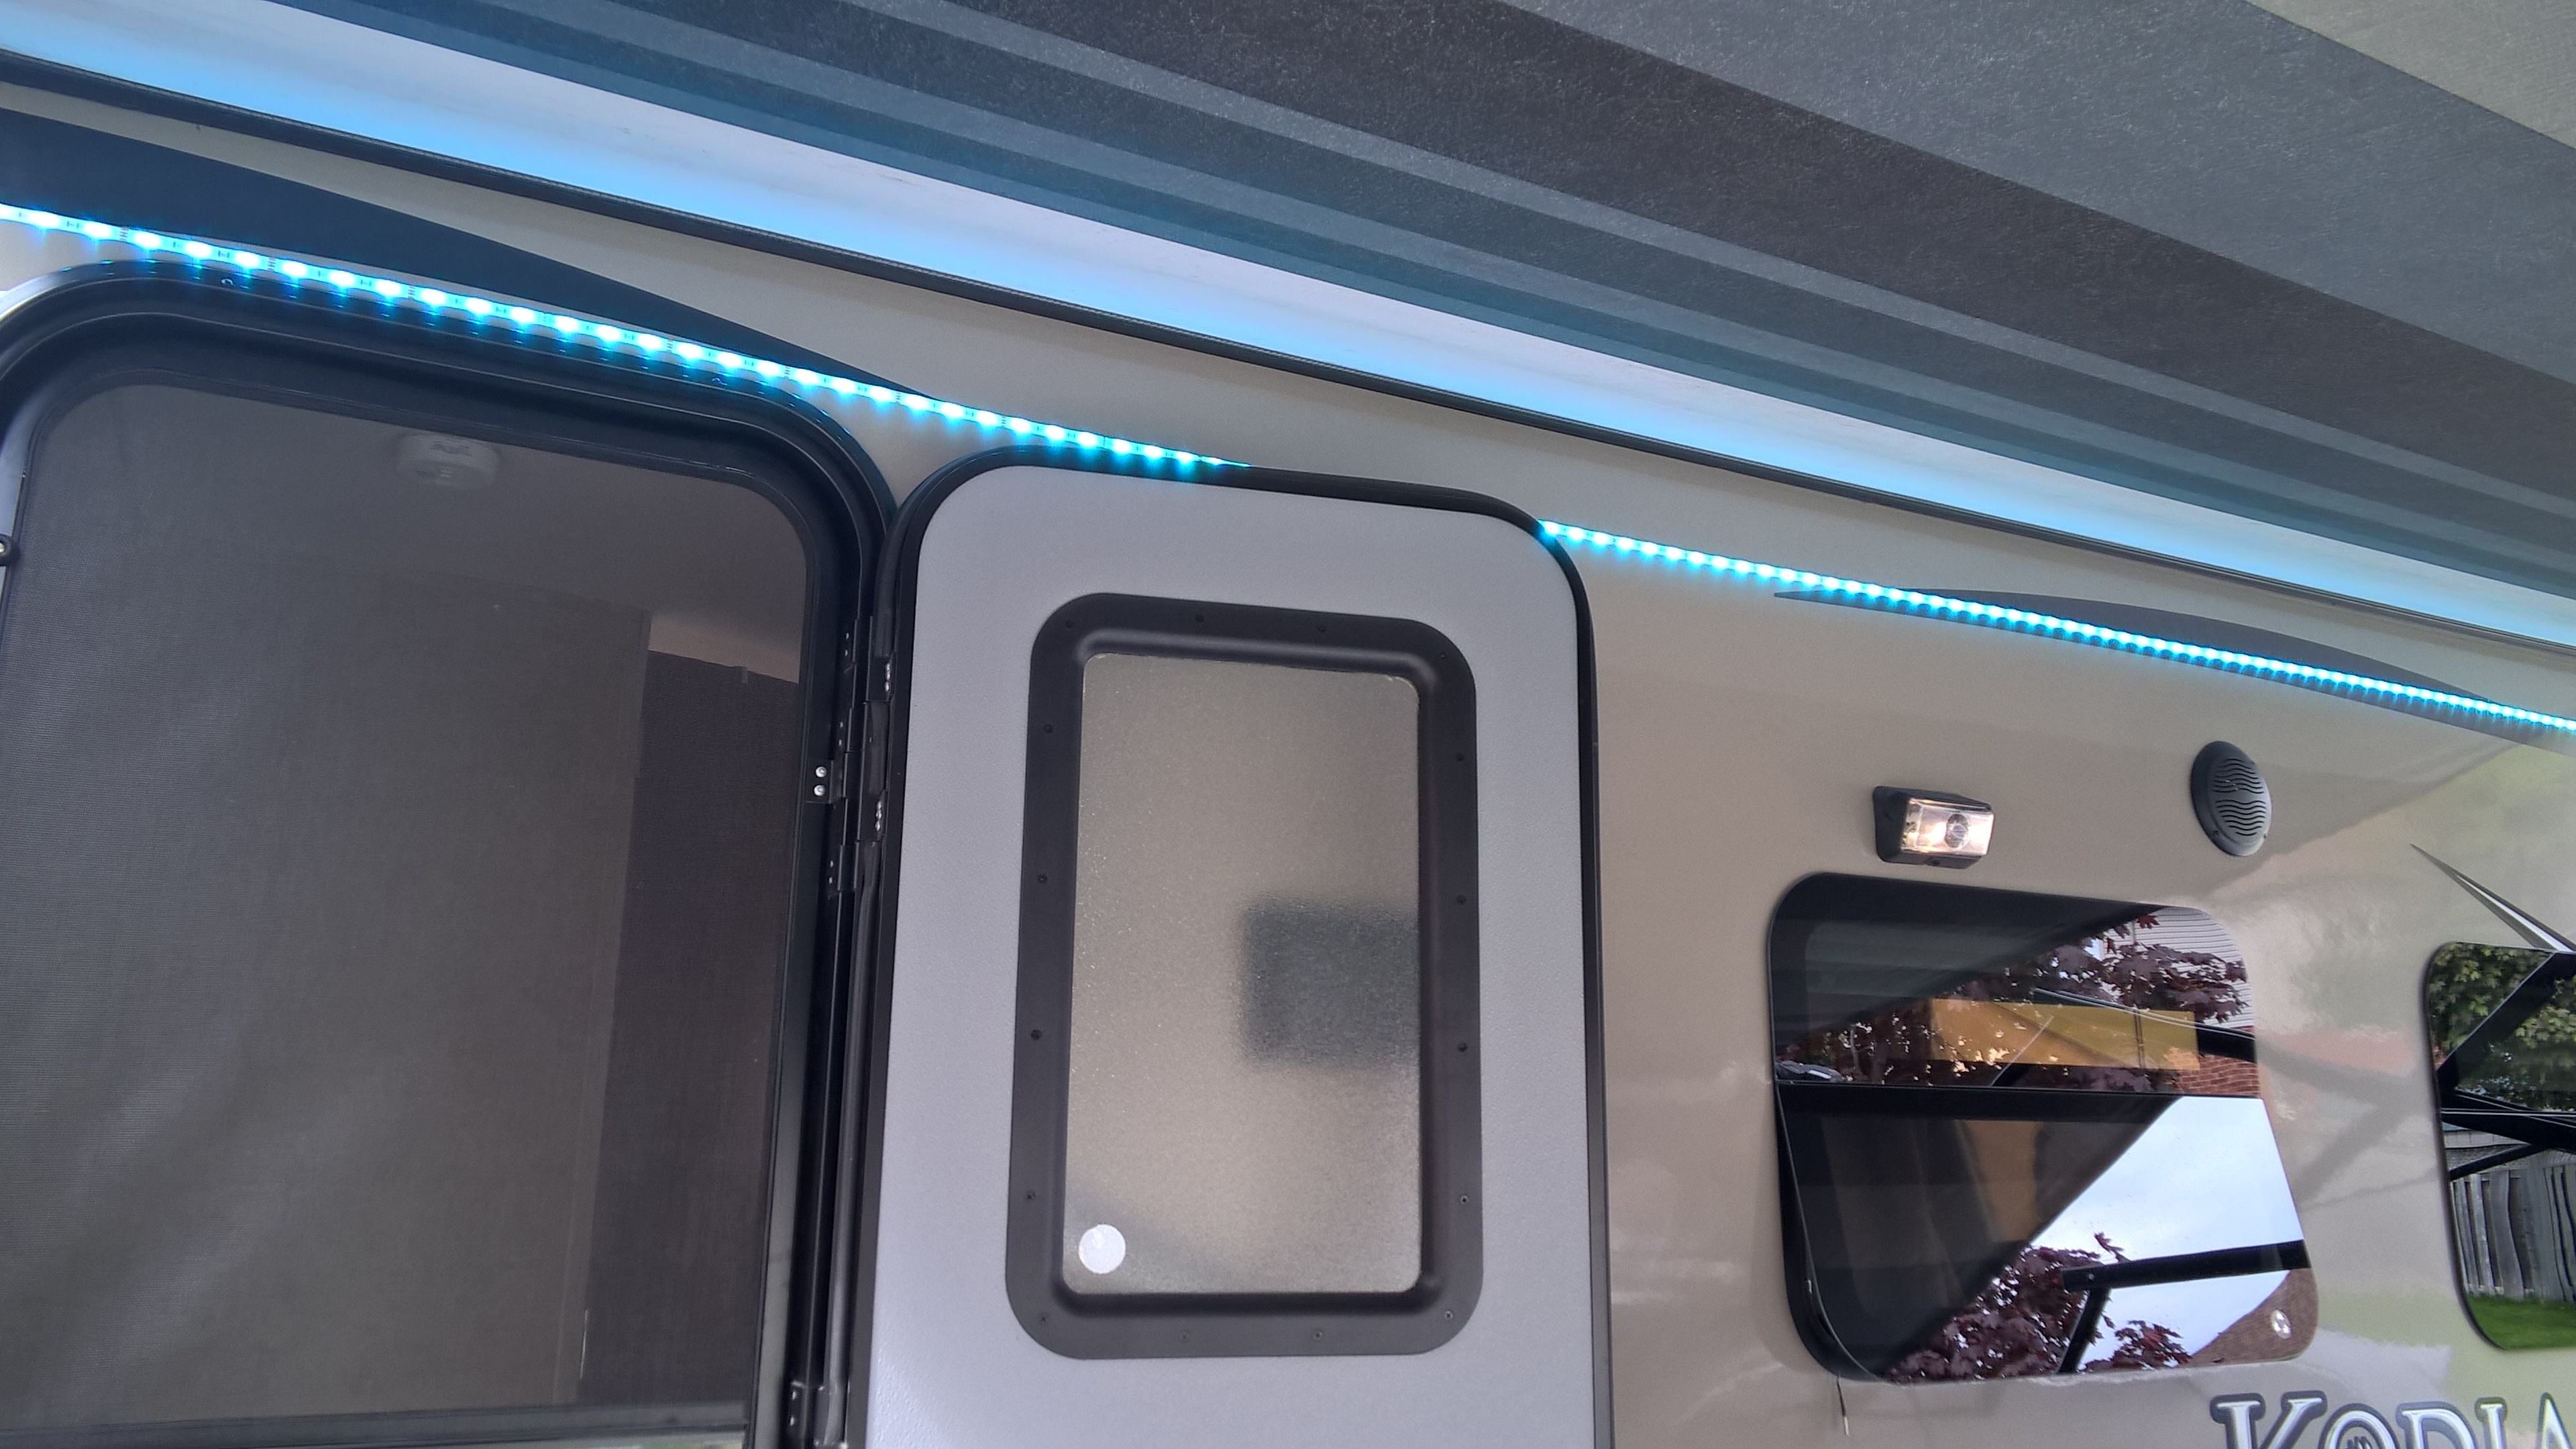 Installing An Rv Led Strip Light Tech With Rvrob Outside Switch Wiring Wp 20150516 15 48 09 Pro